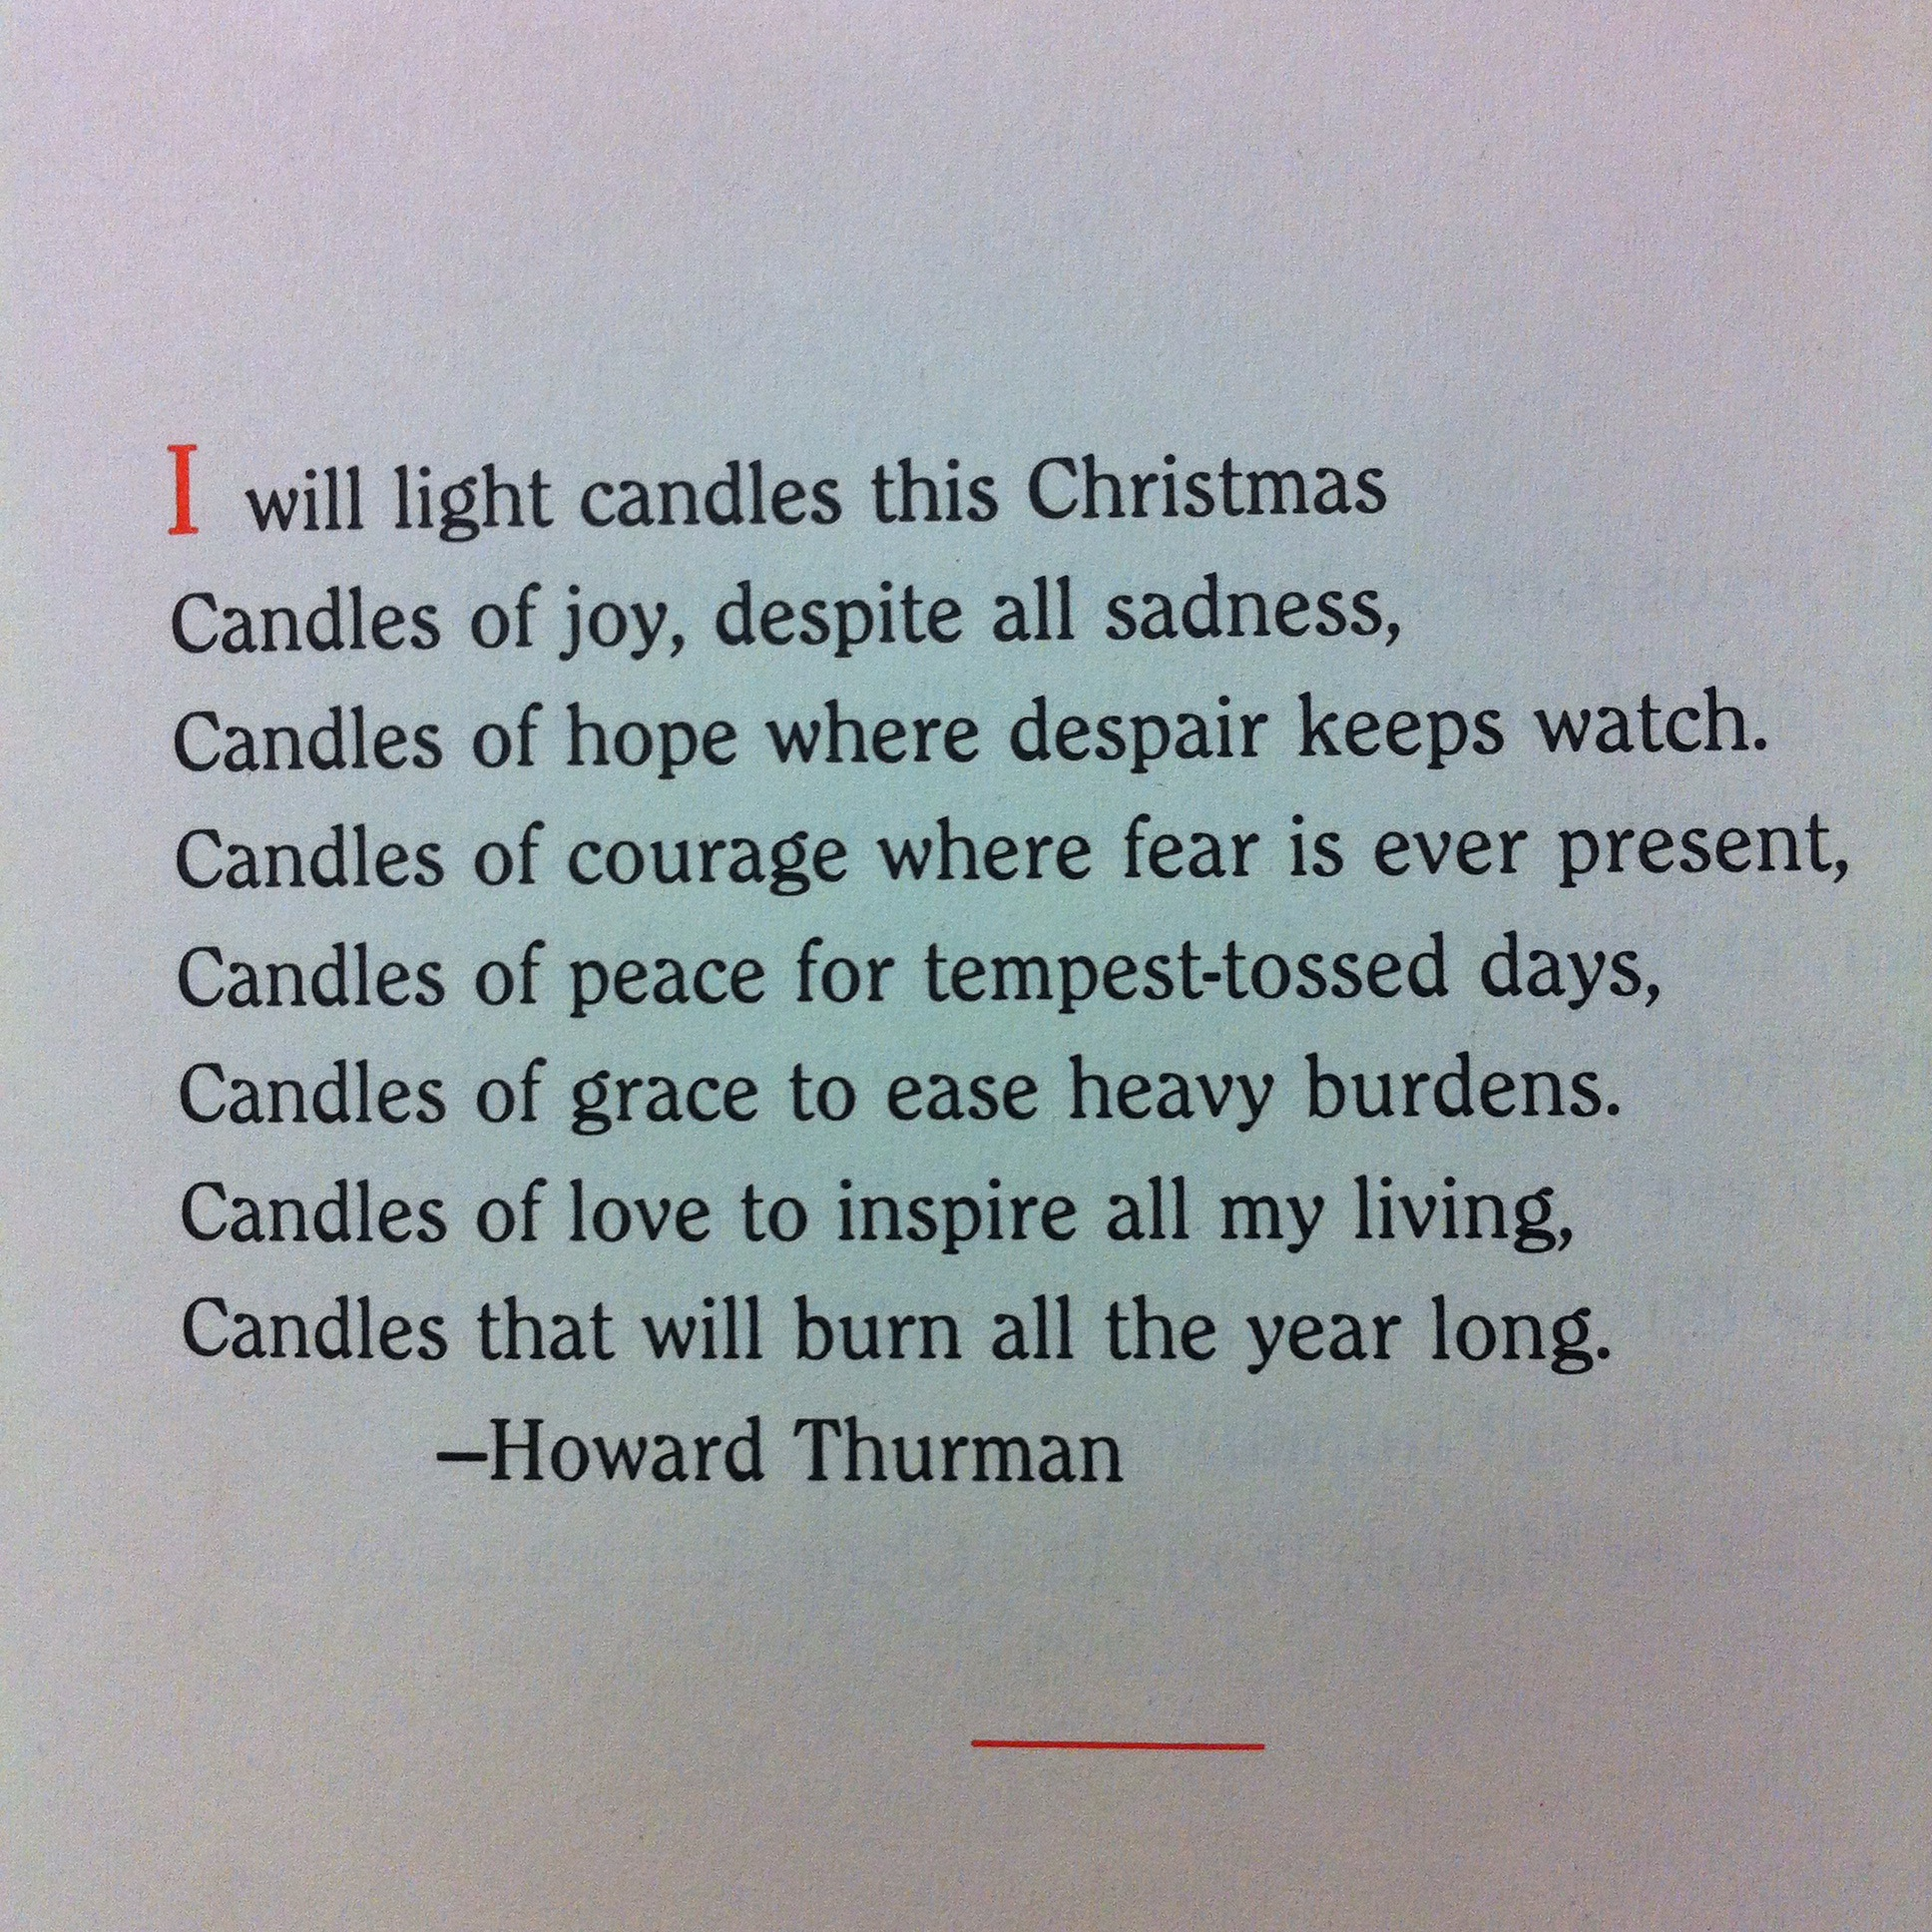 howard thurman | martinistyle